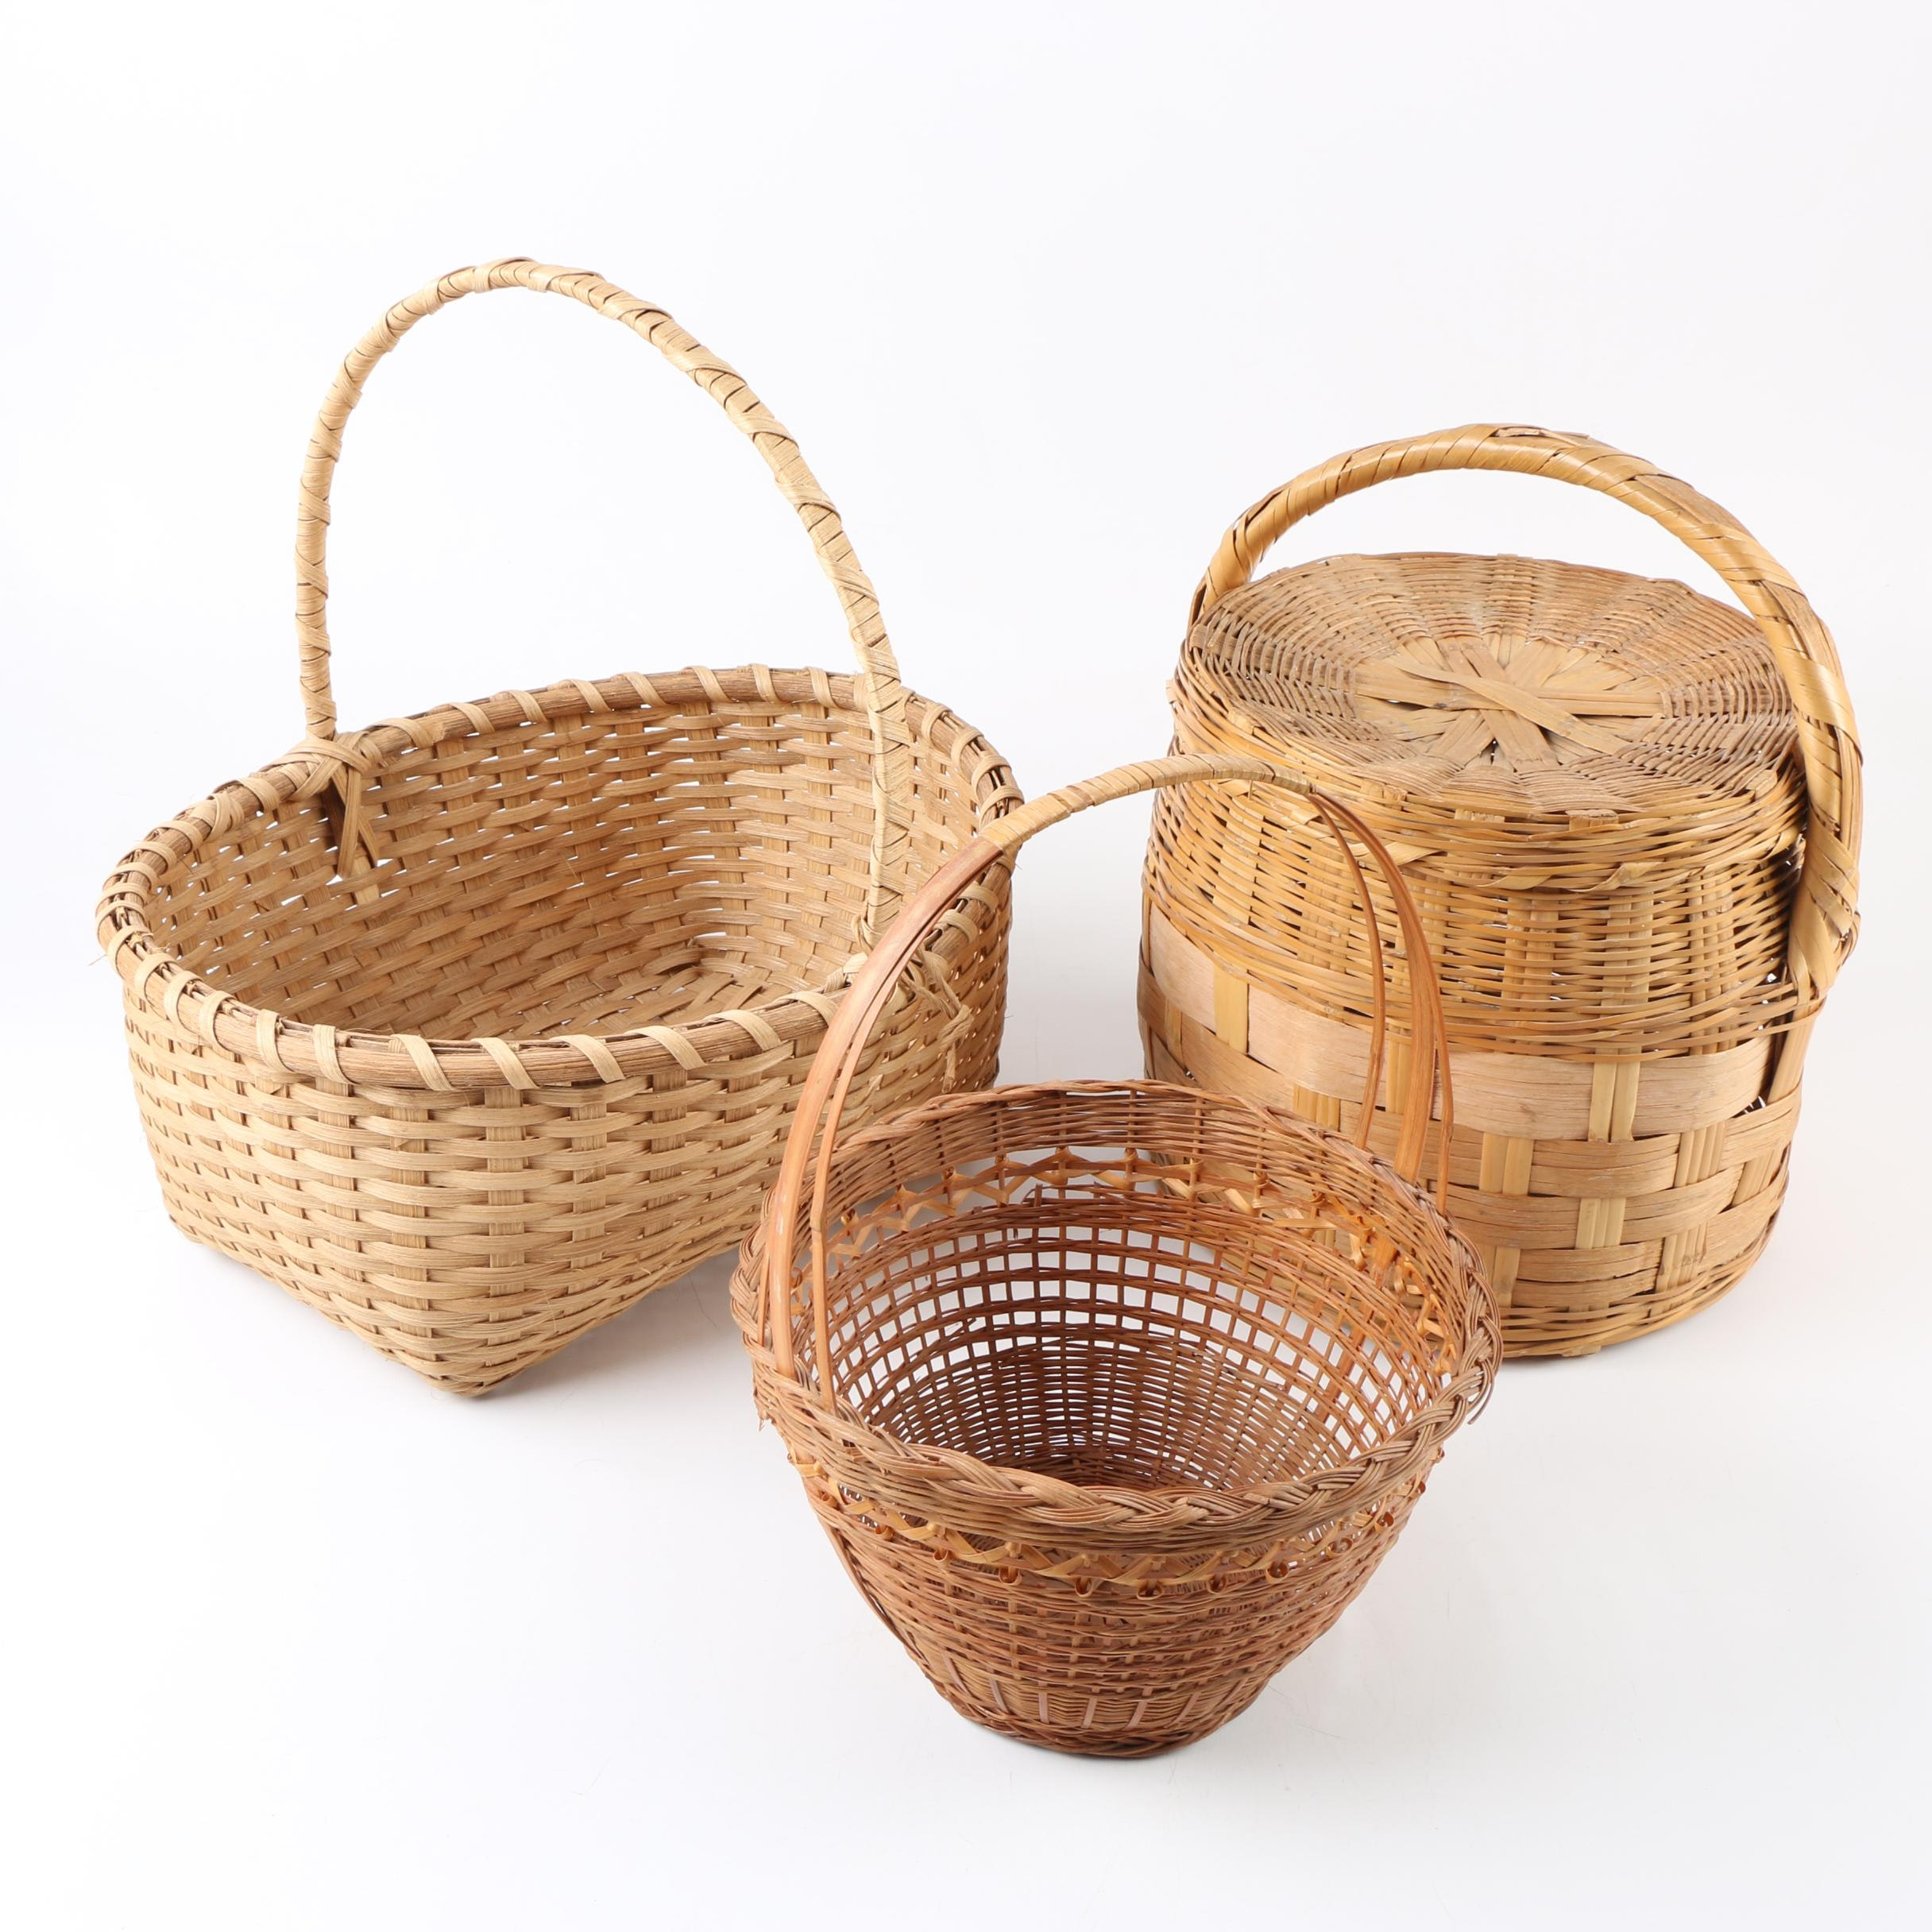 Contemporary Hand Plaited and Twined Reed Gathering Baskets